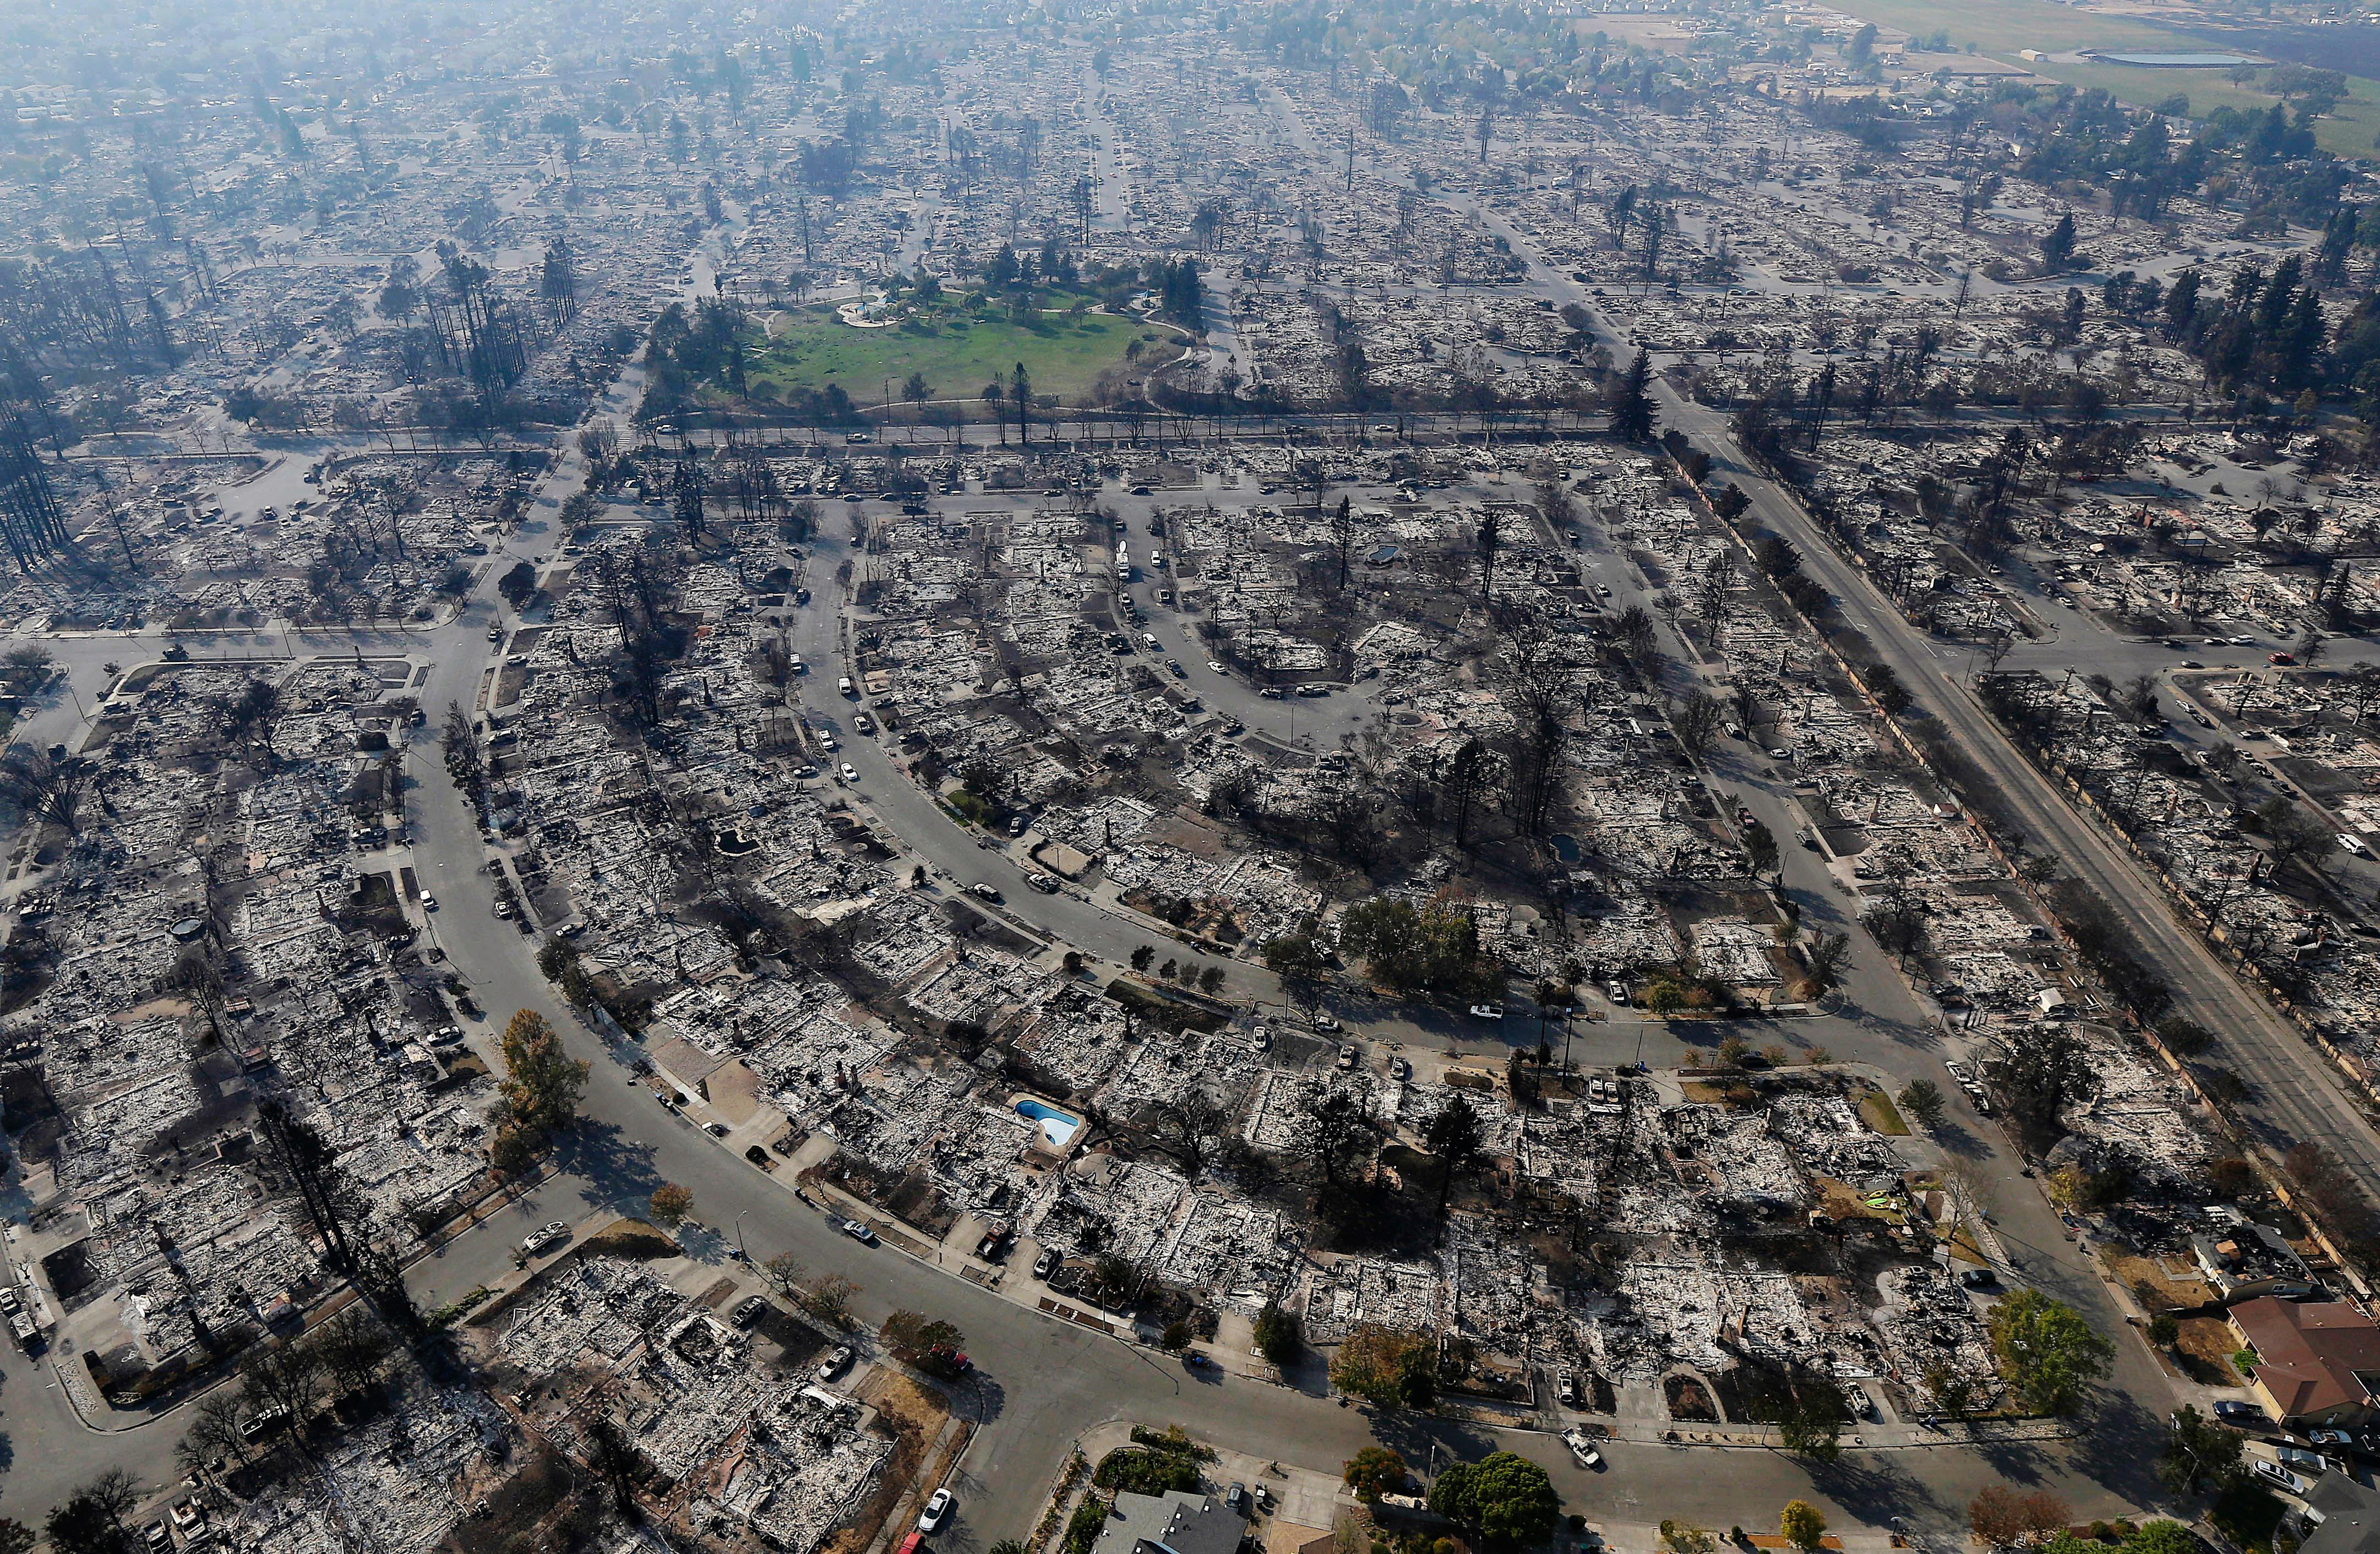 FILE - In this Oct. 11, 2017, file photo, homes burned by a wildfire are viewed in Santa Rosa, Calif. The long and brutal 2017 wildfire season is stressing the state and federal agencies that have to pay for the army of ground crews and machinery required to fight them. (AP Photo/Jeff Chiu, File)